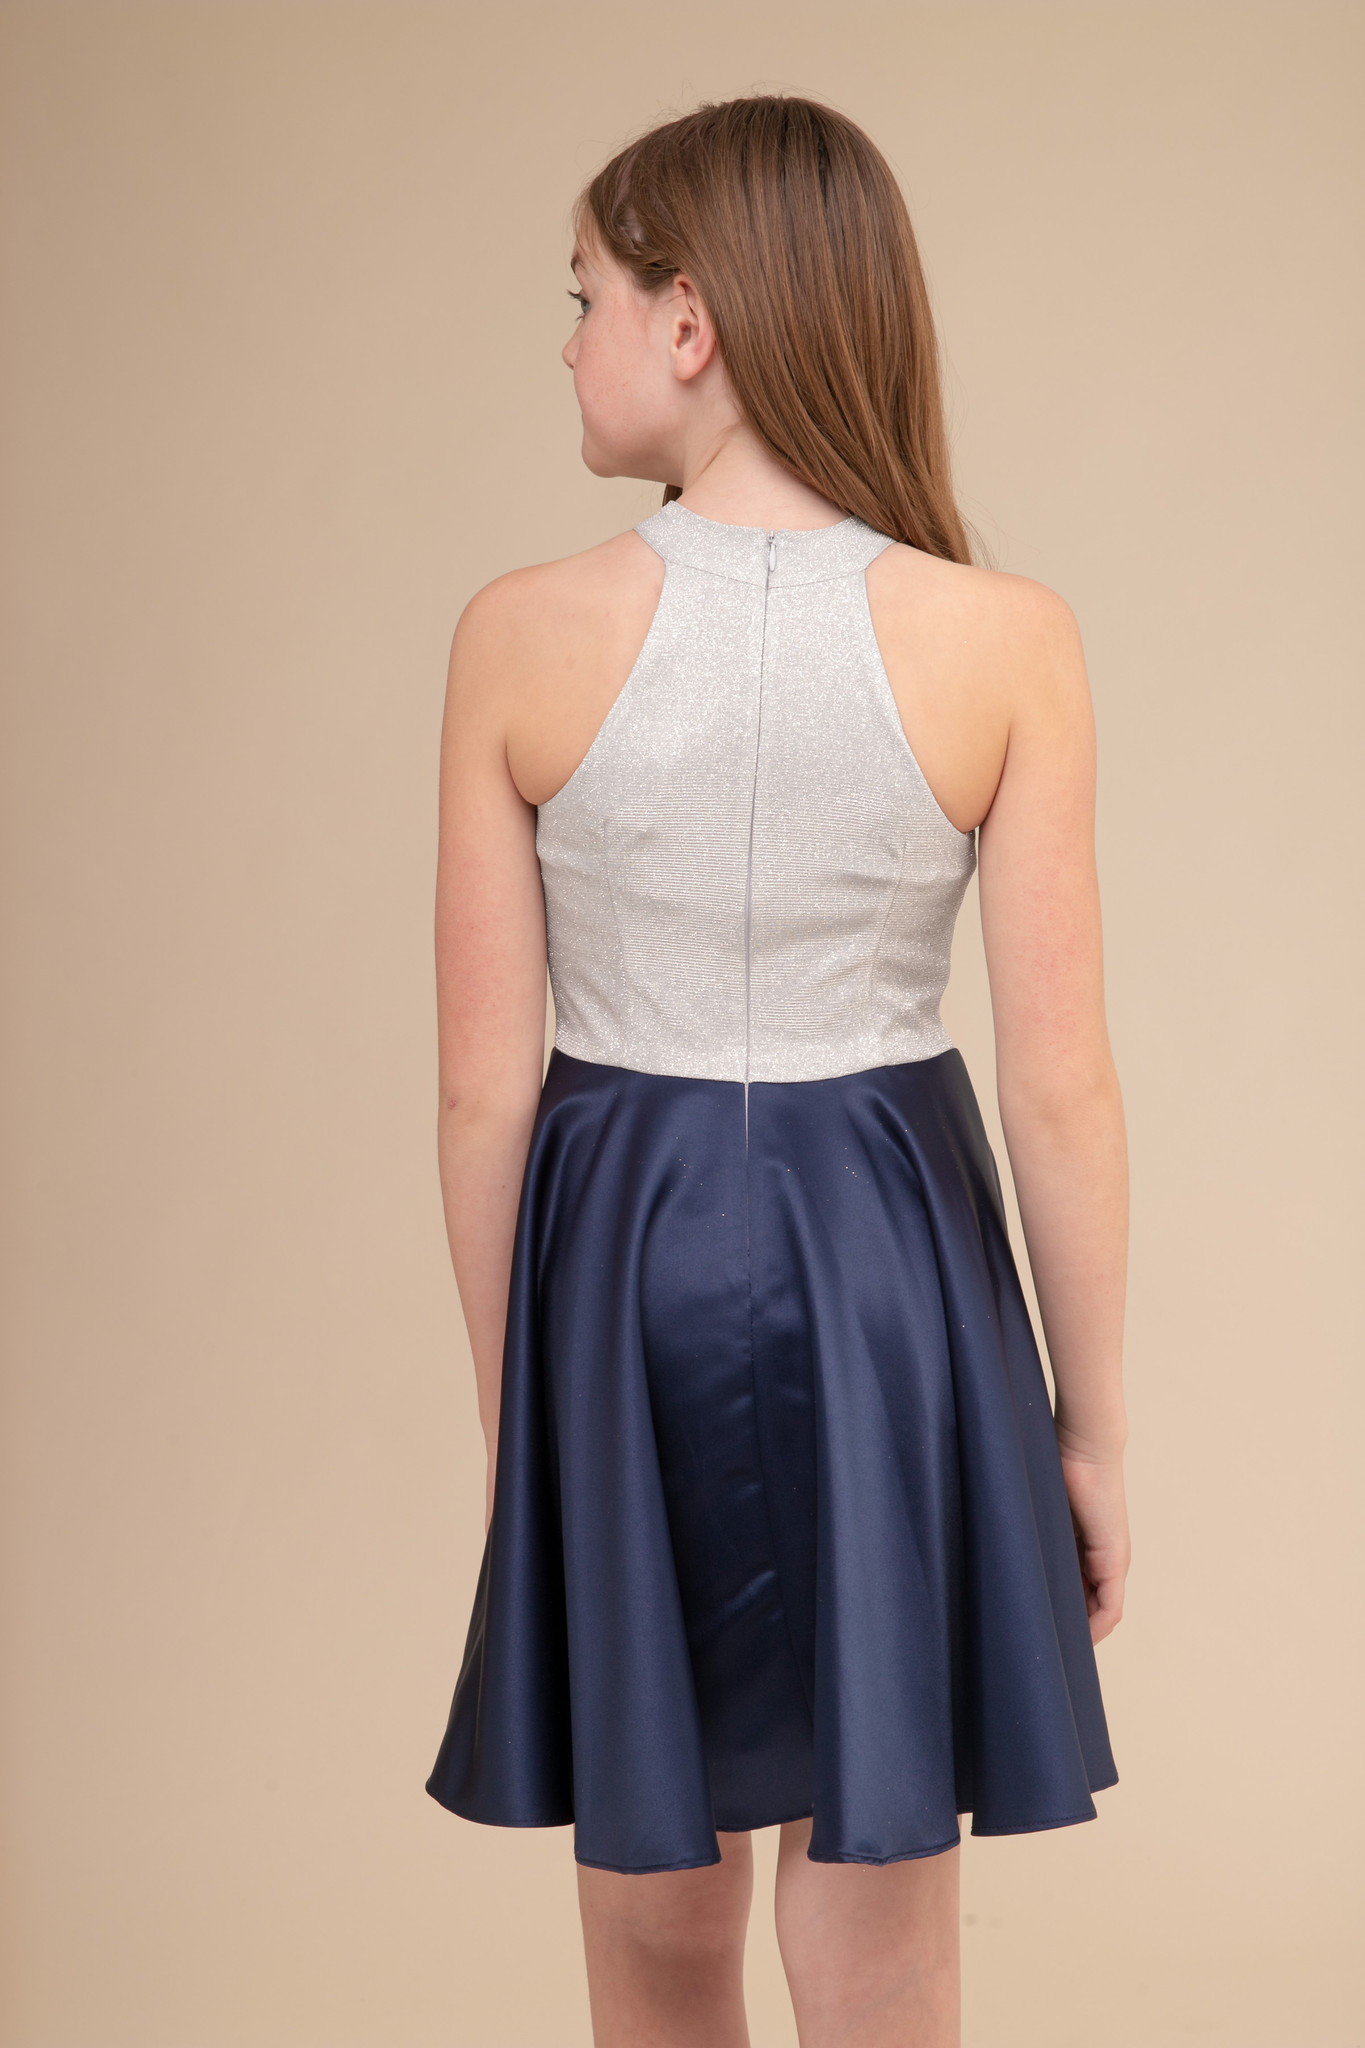 High Neck Silver Glitter and Navy Satin Party Dress in Longer Length.